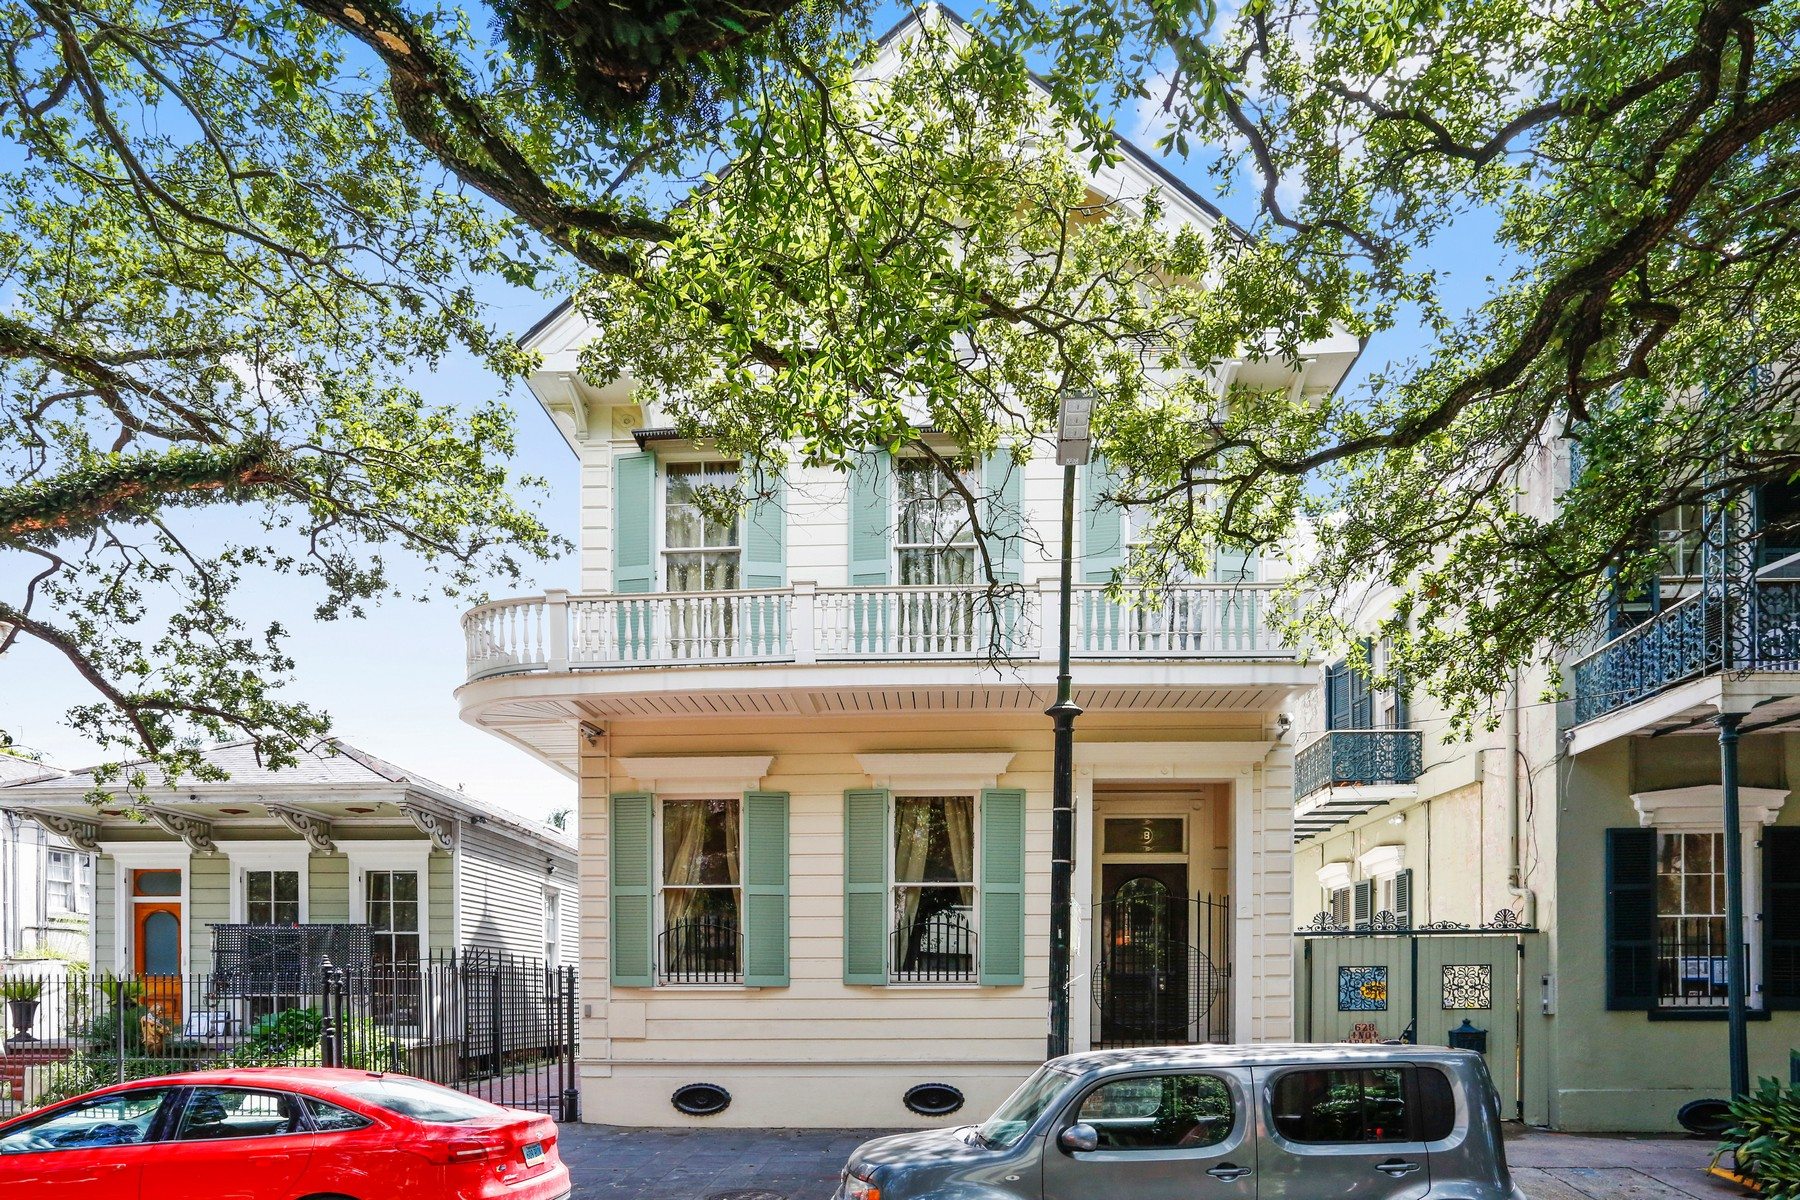 Single Family Home for Sale at 622 Esplanade Avenue New Orleans, Louisiana, 70116 United States